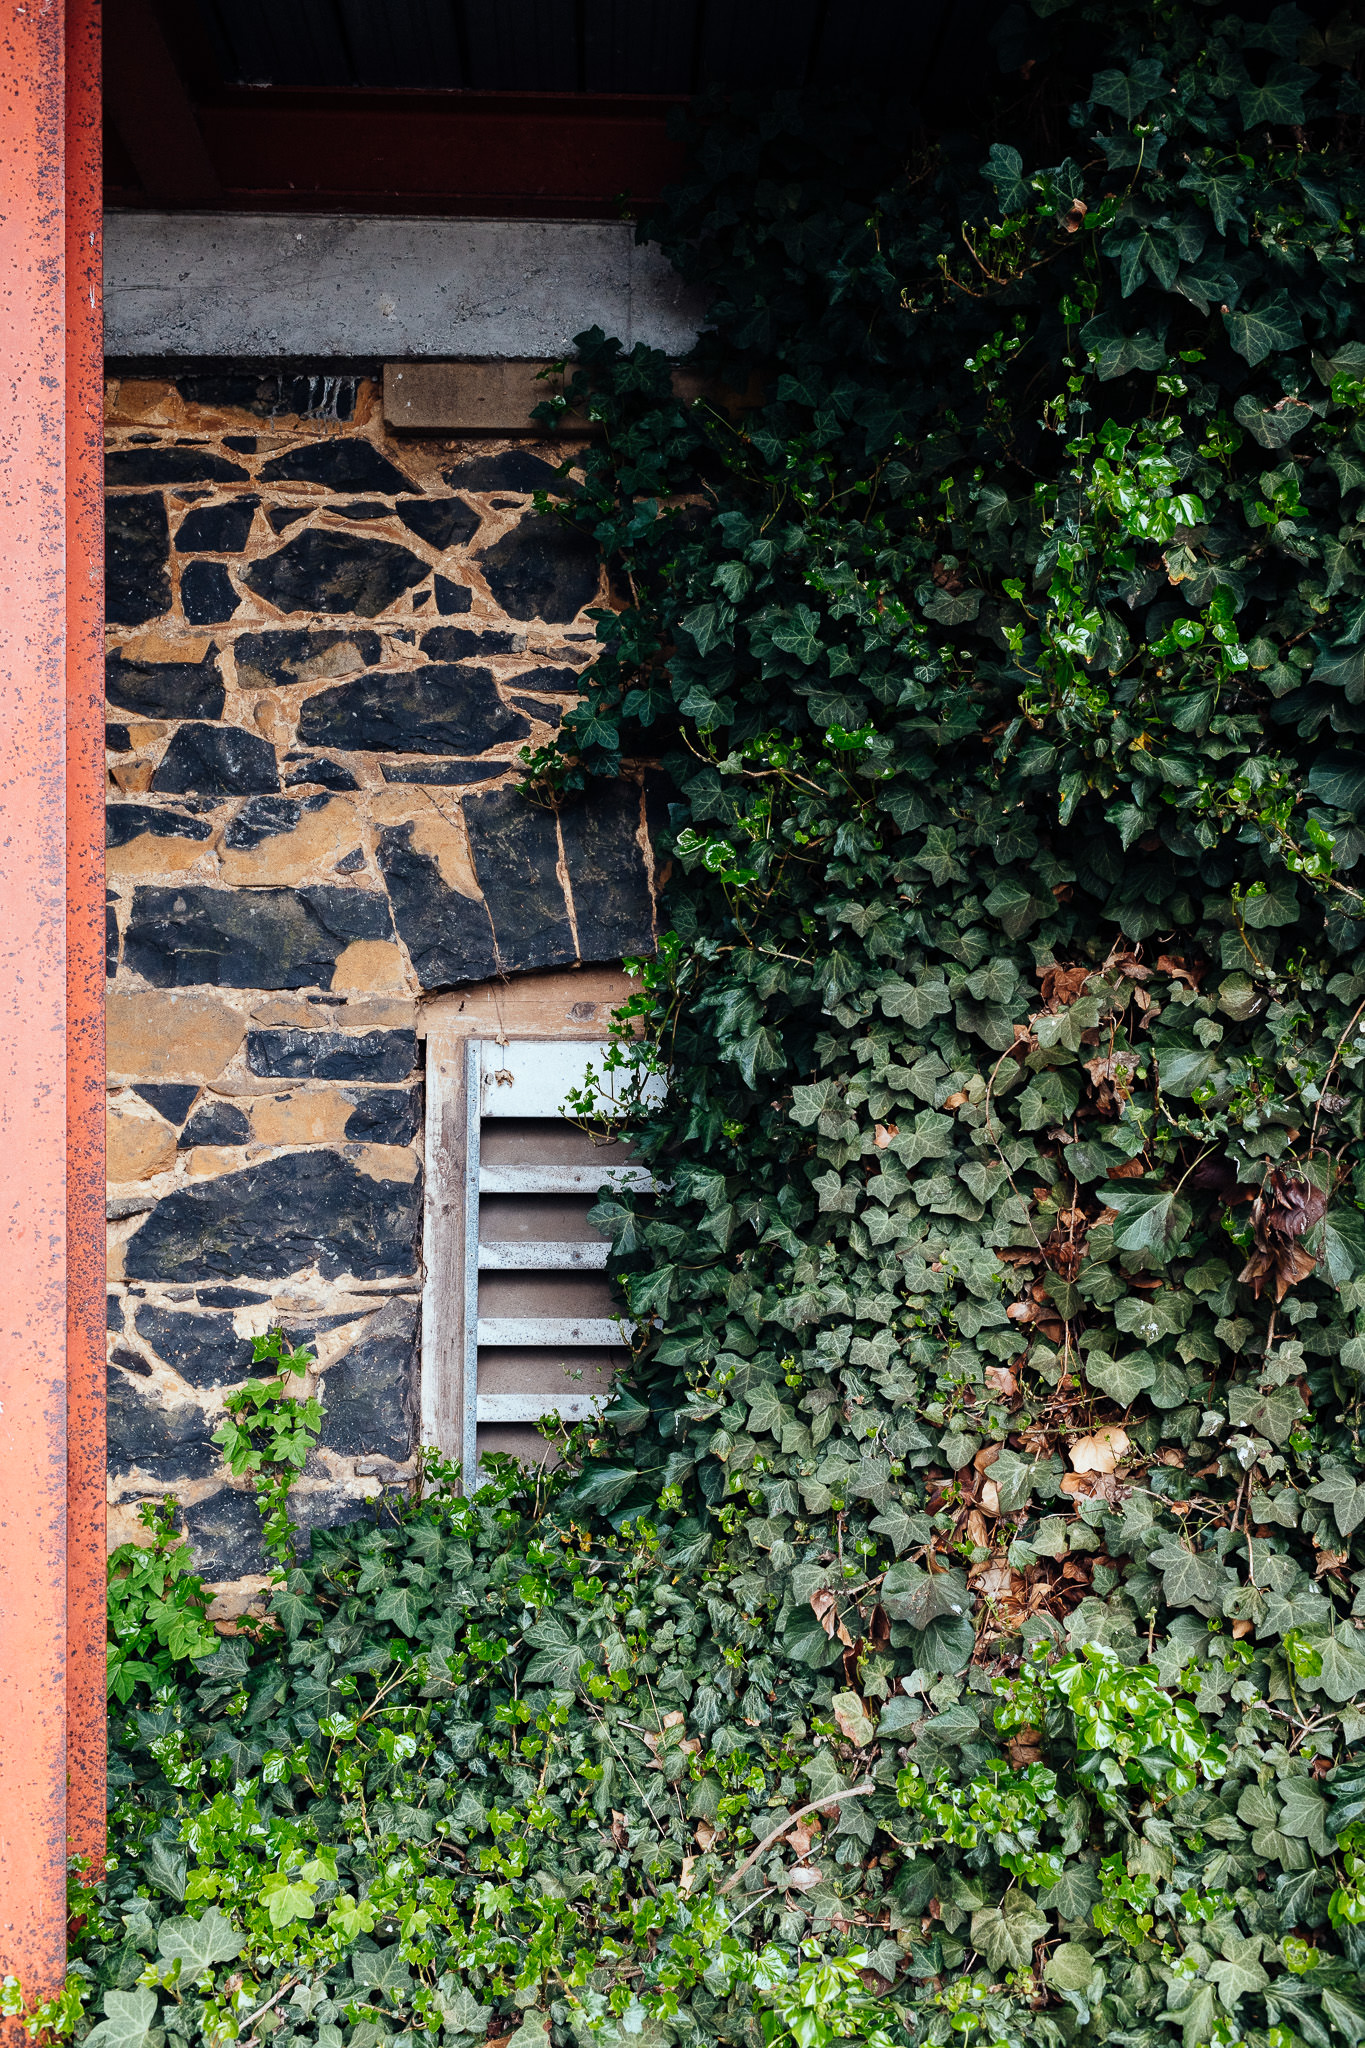 208/365 | The old Sullivan's Grain Store (early 1900s) peeking out from the ivy in the Woolworths carpark.